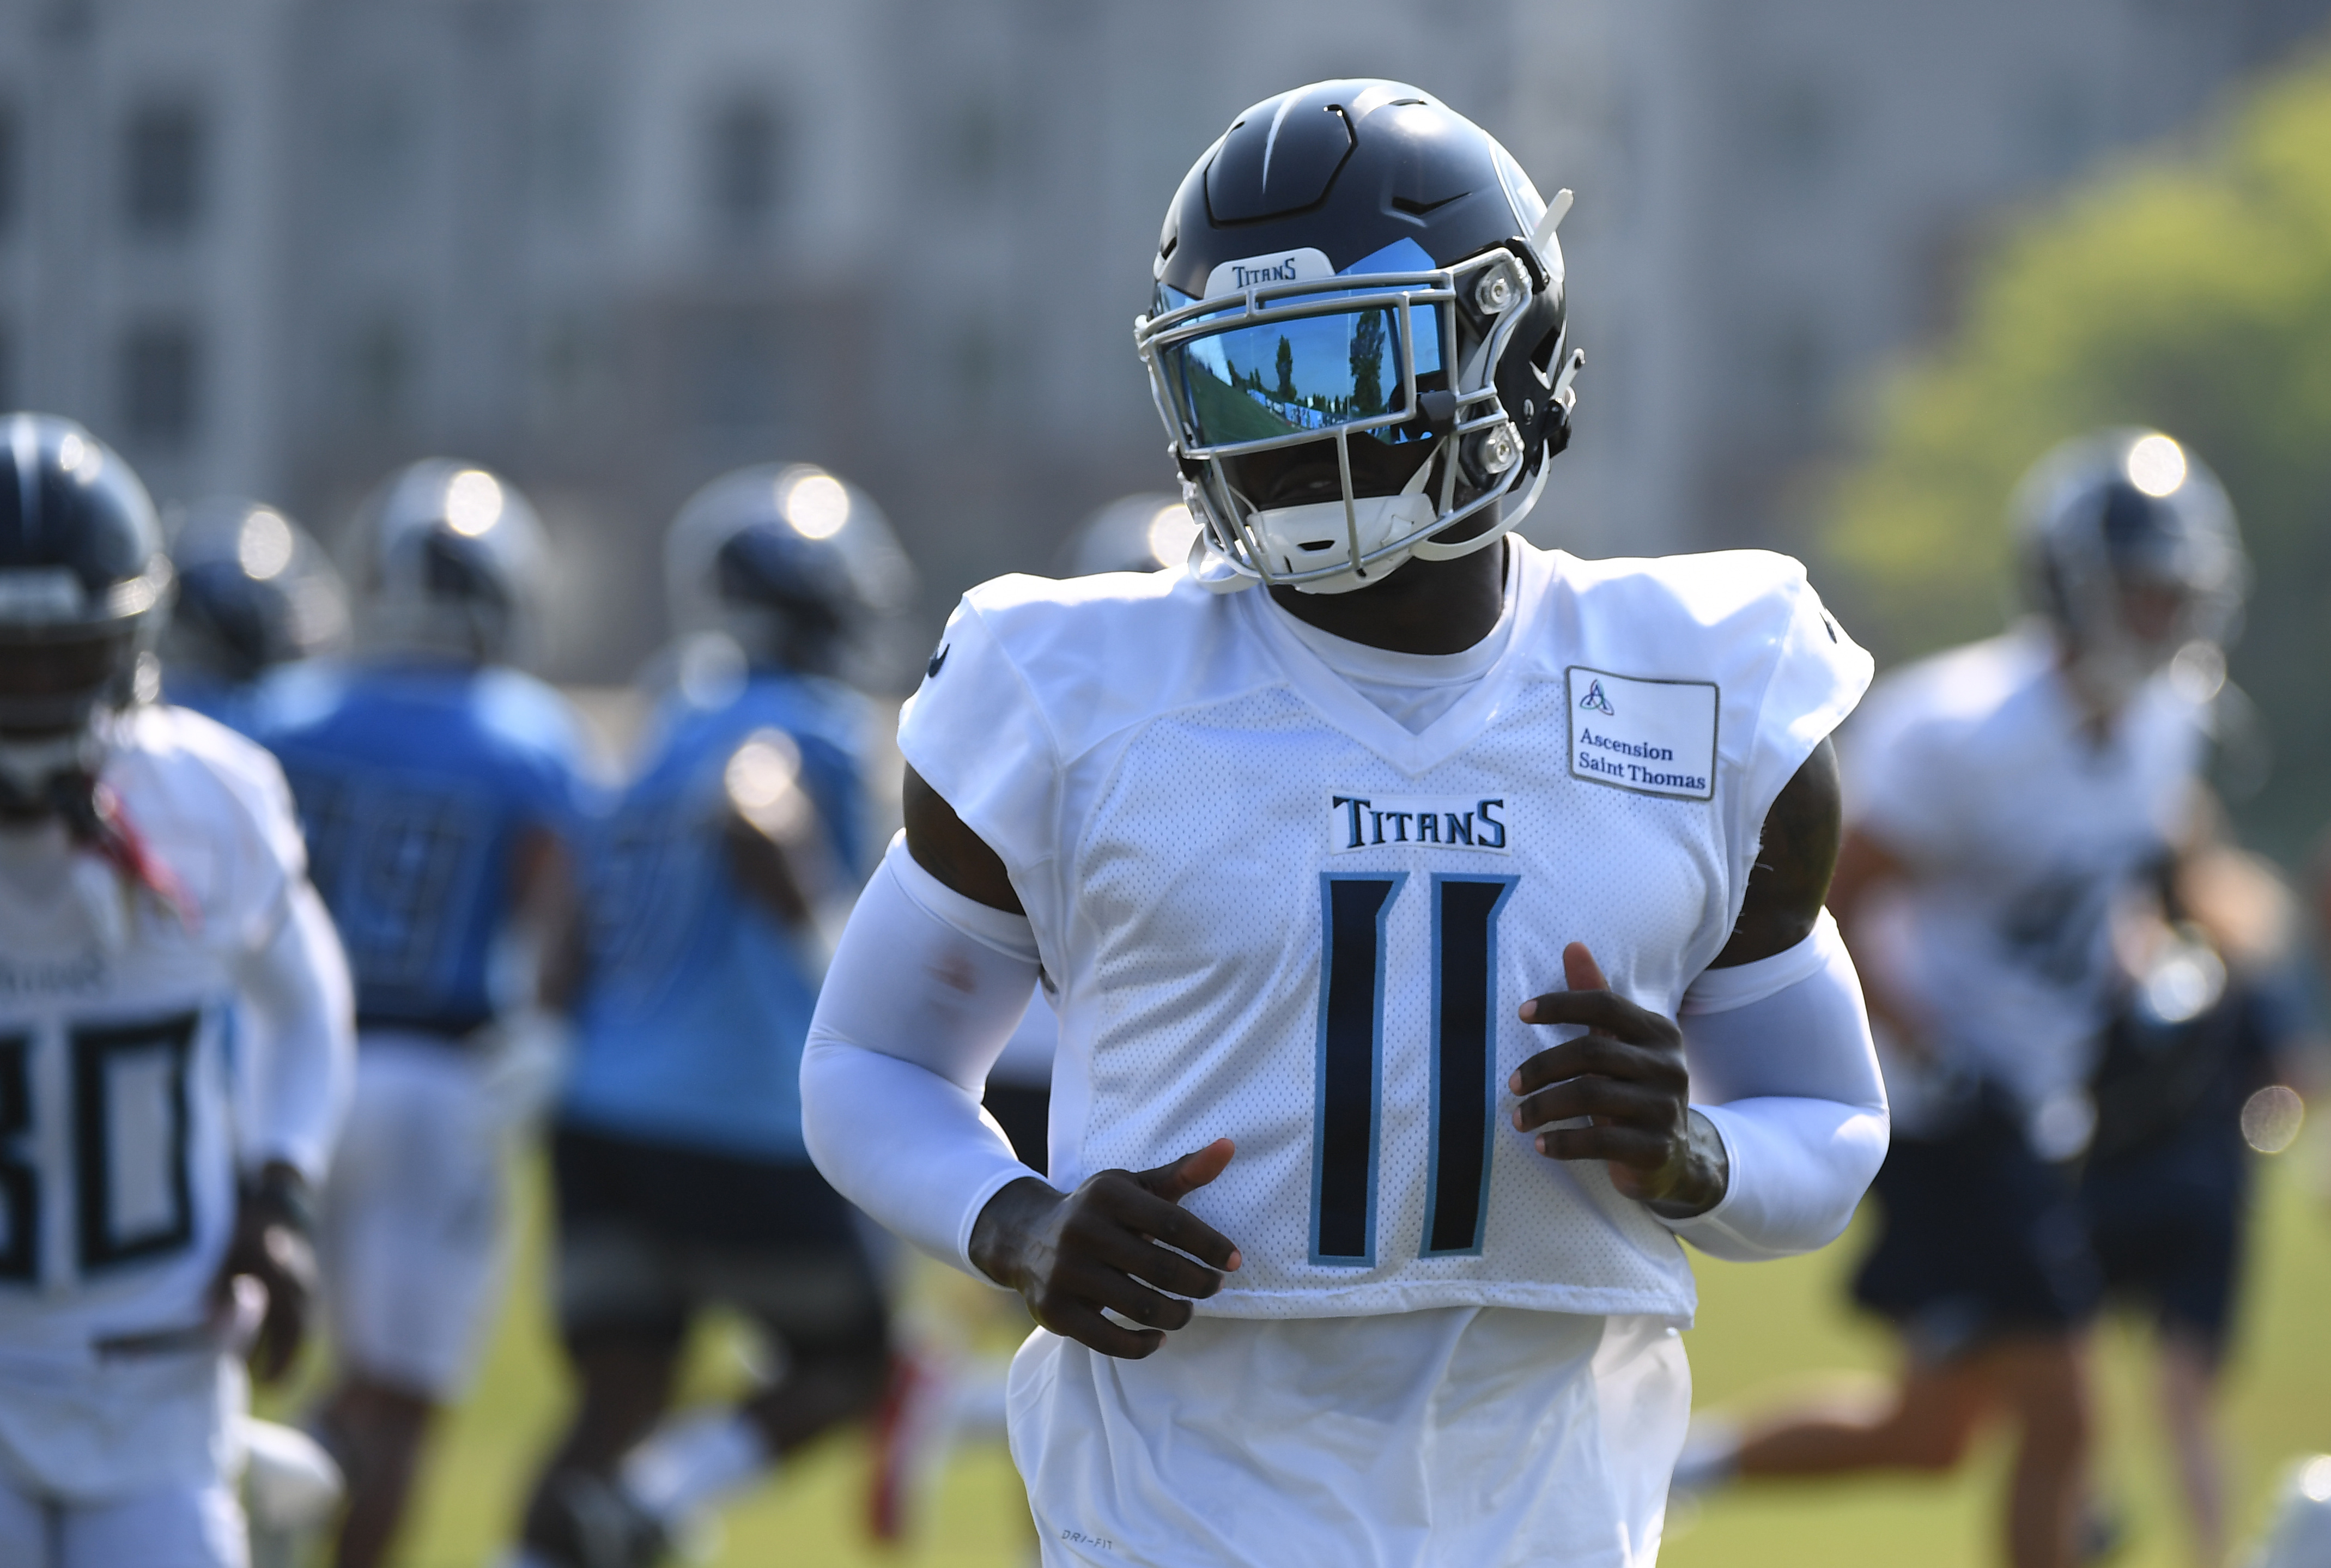 Tennessee Titans wide receiver A.J. Brown (11) during training camp at Saint Thomas Sports Park.